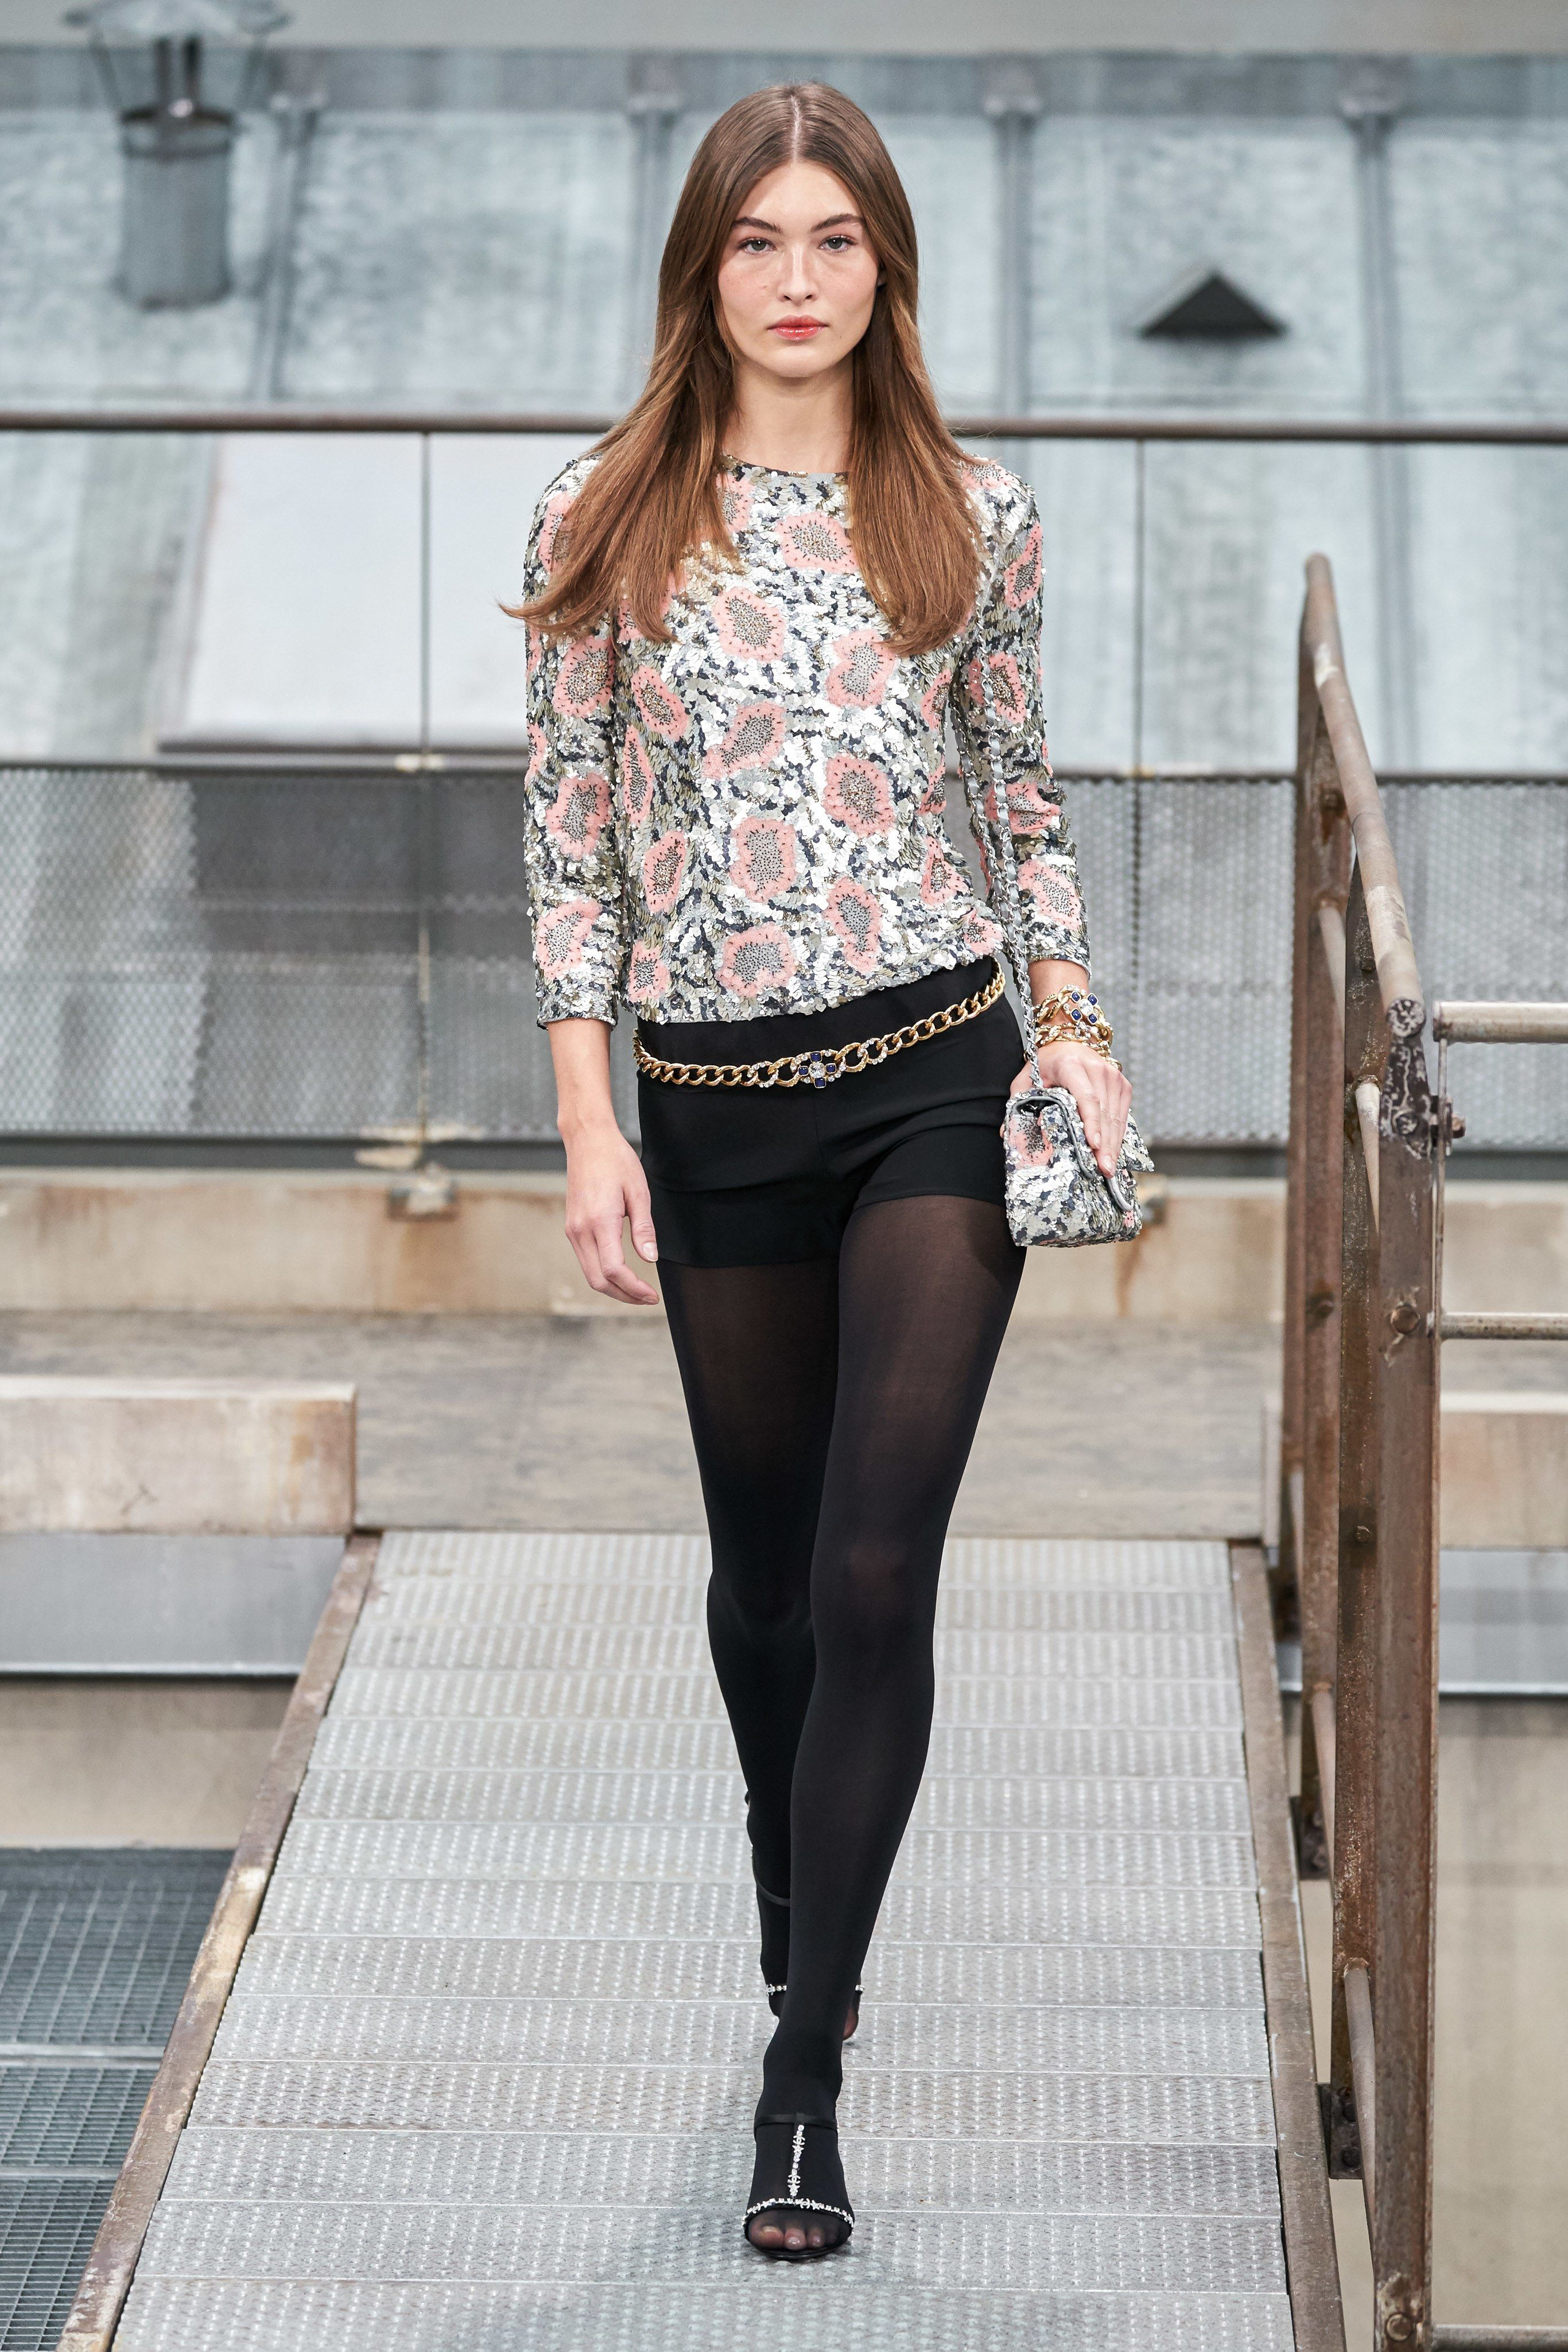 Chanel Spring Summer 2020 Ss2020 Trends Runway Coverage Ready To Wear Vogue Hot Pants Fashion 2020 Fashion Trends Ready To Wear